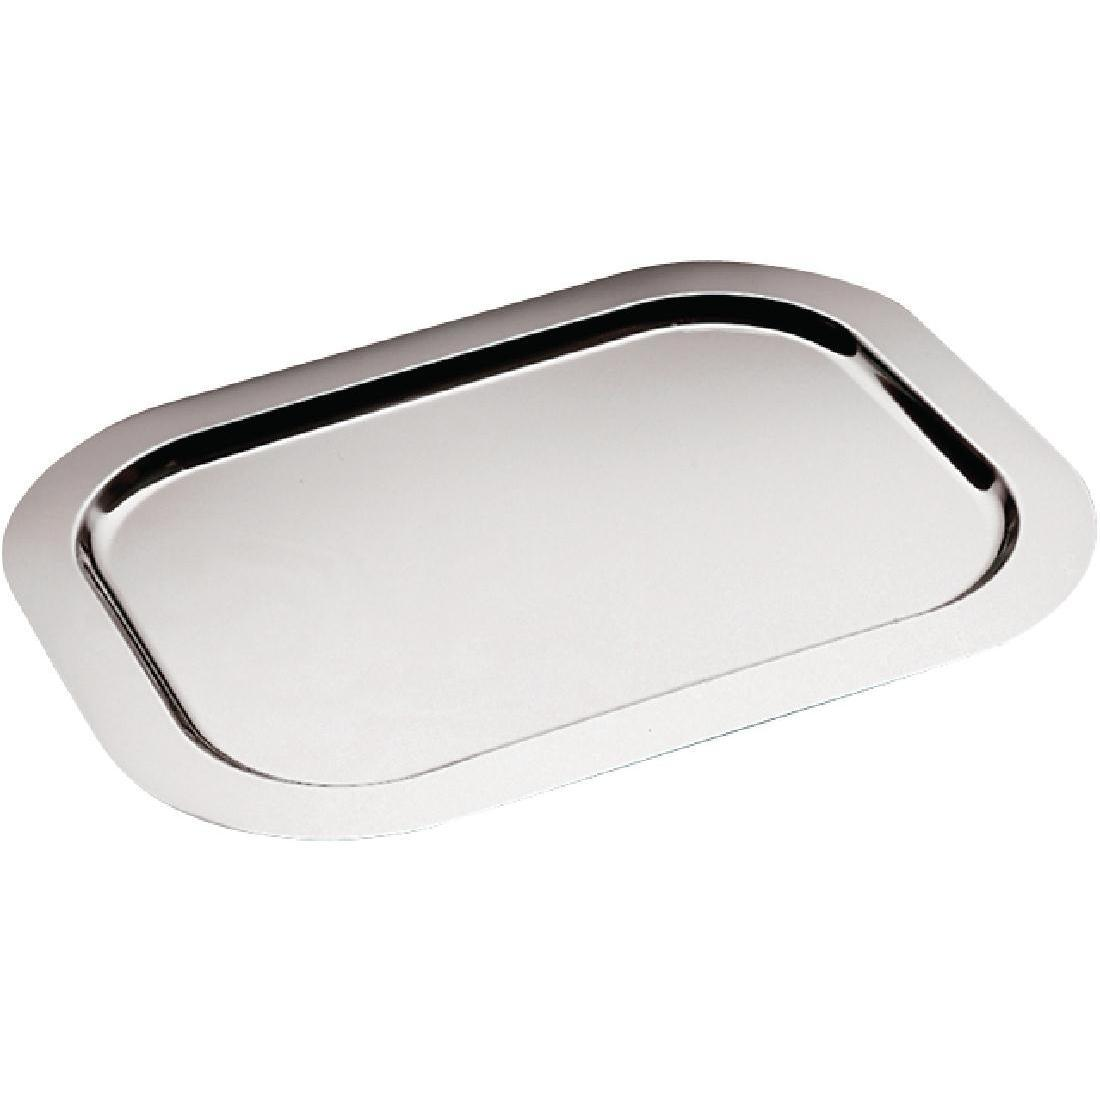 APS Large Stainless Steel Service Tray 580mm - Each - CF026